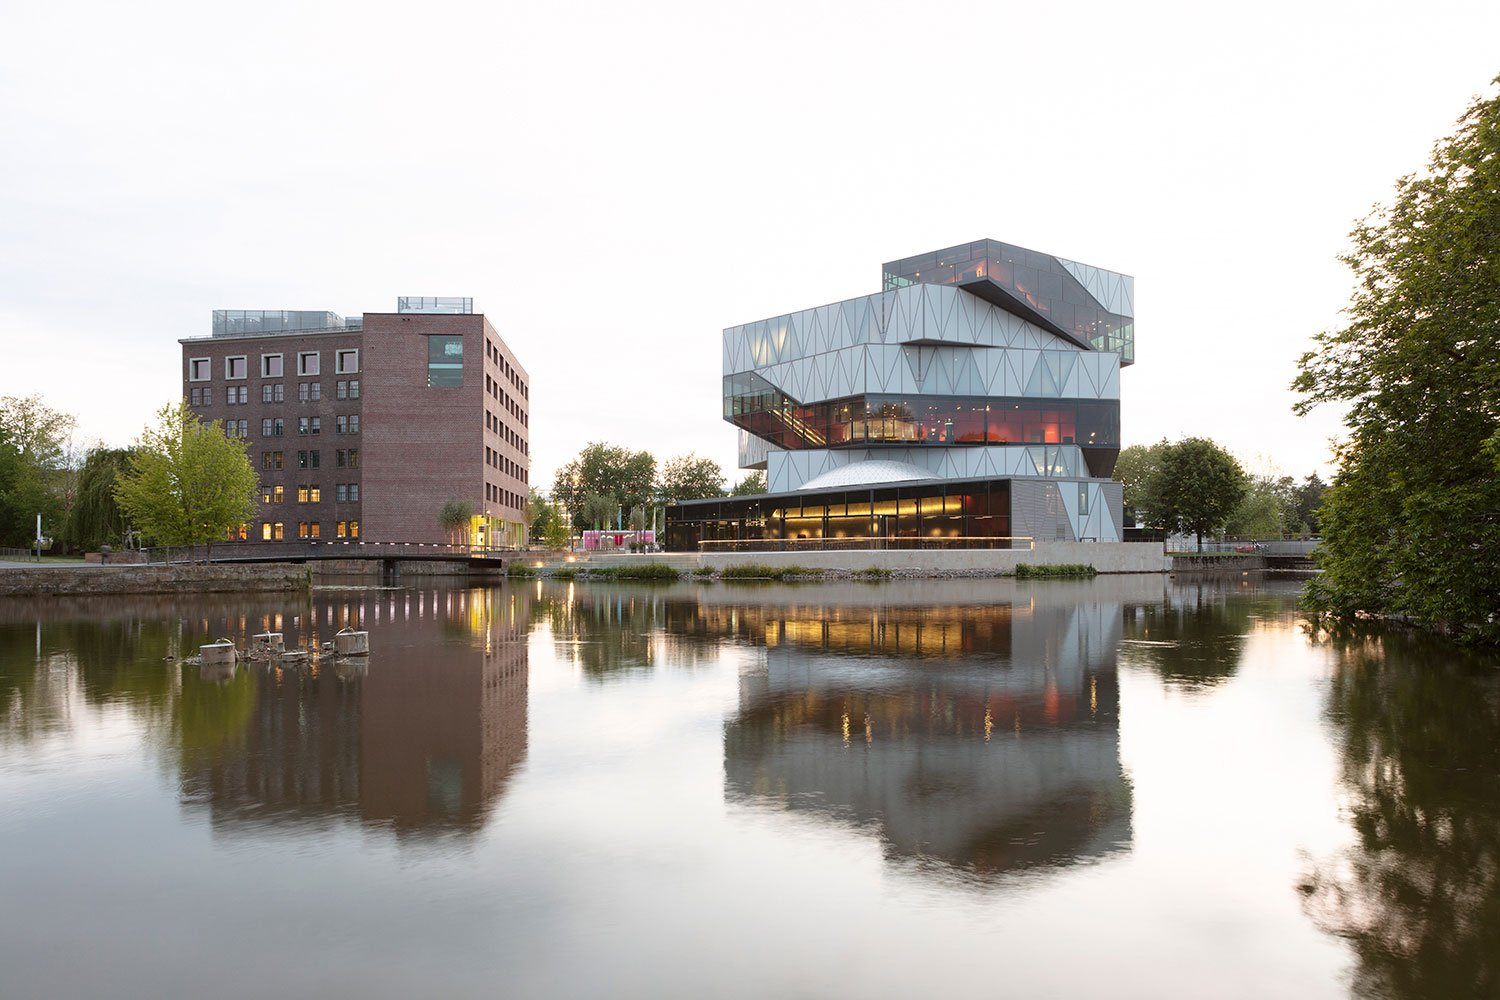 view from the east with the converted warehouse and the new Experimenta building Jan Bitter